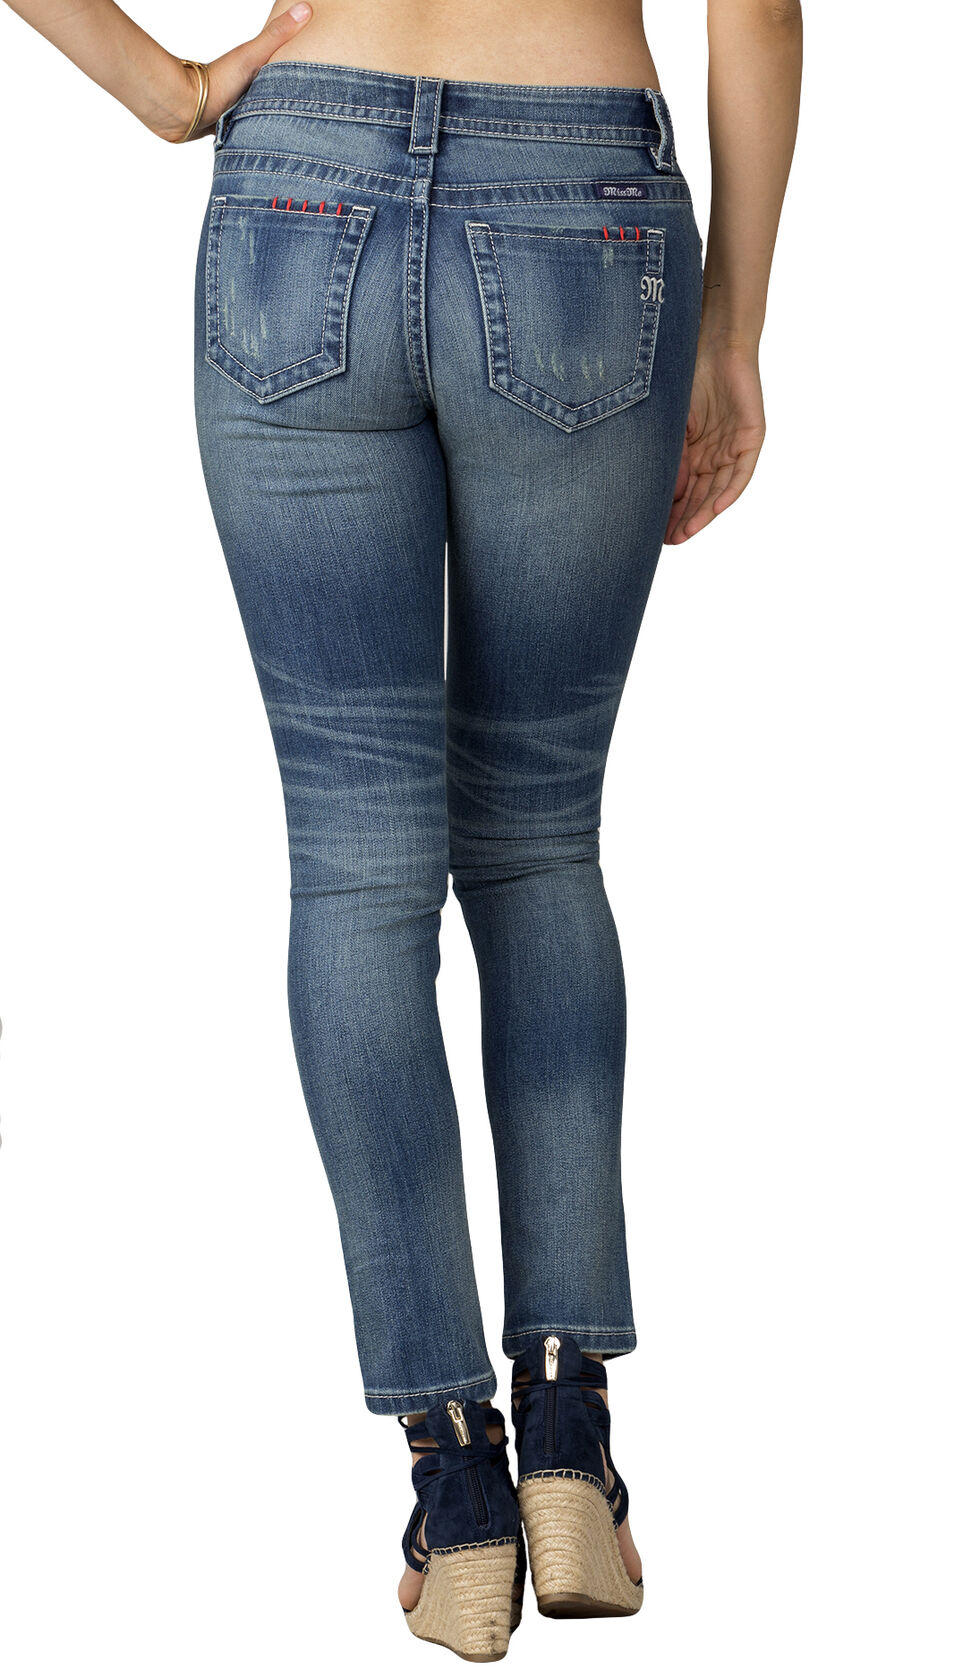 Miss Me Women's Floral Patch Ankle Skinny Jeans, Indigo, hi-res